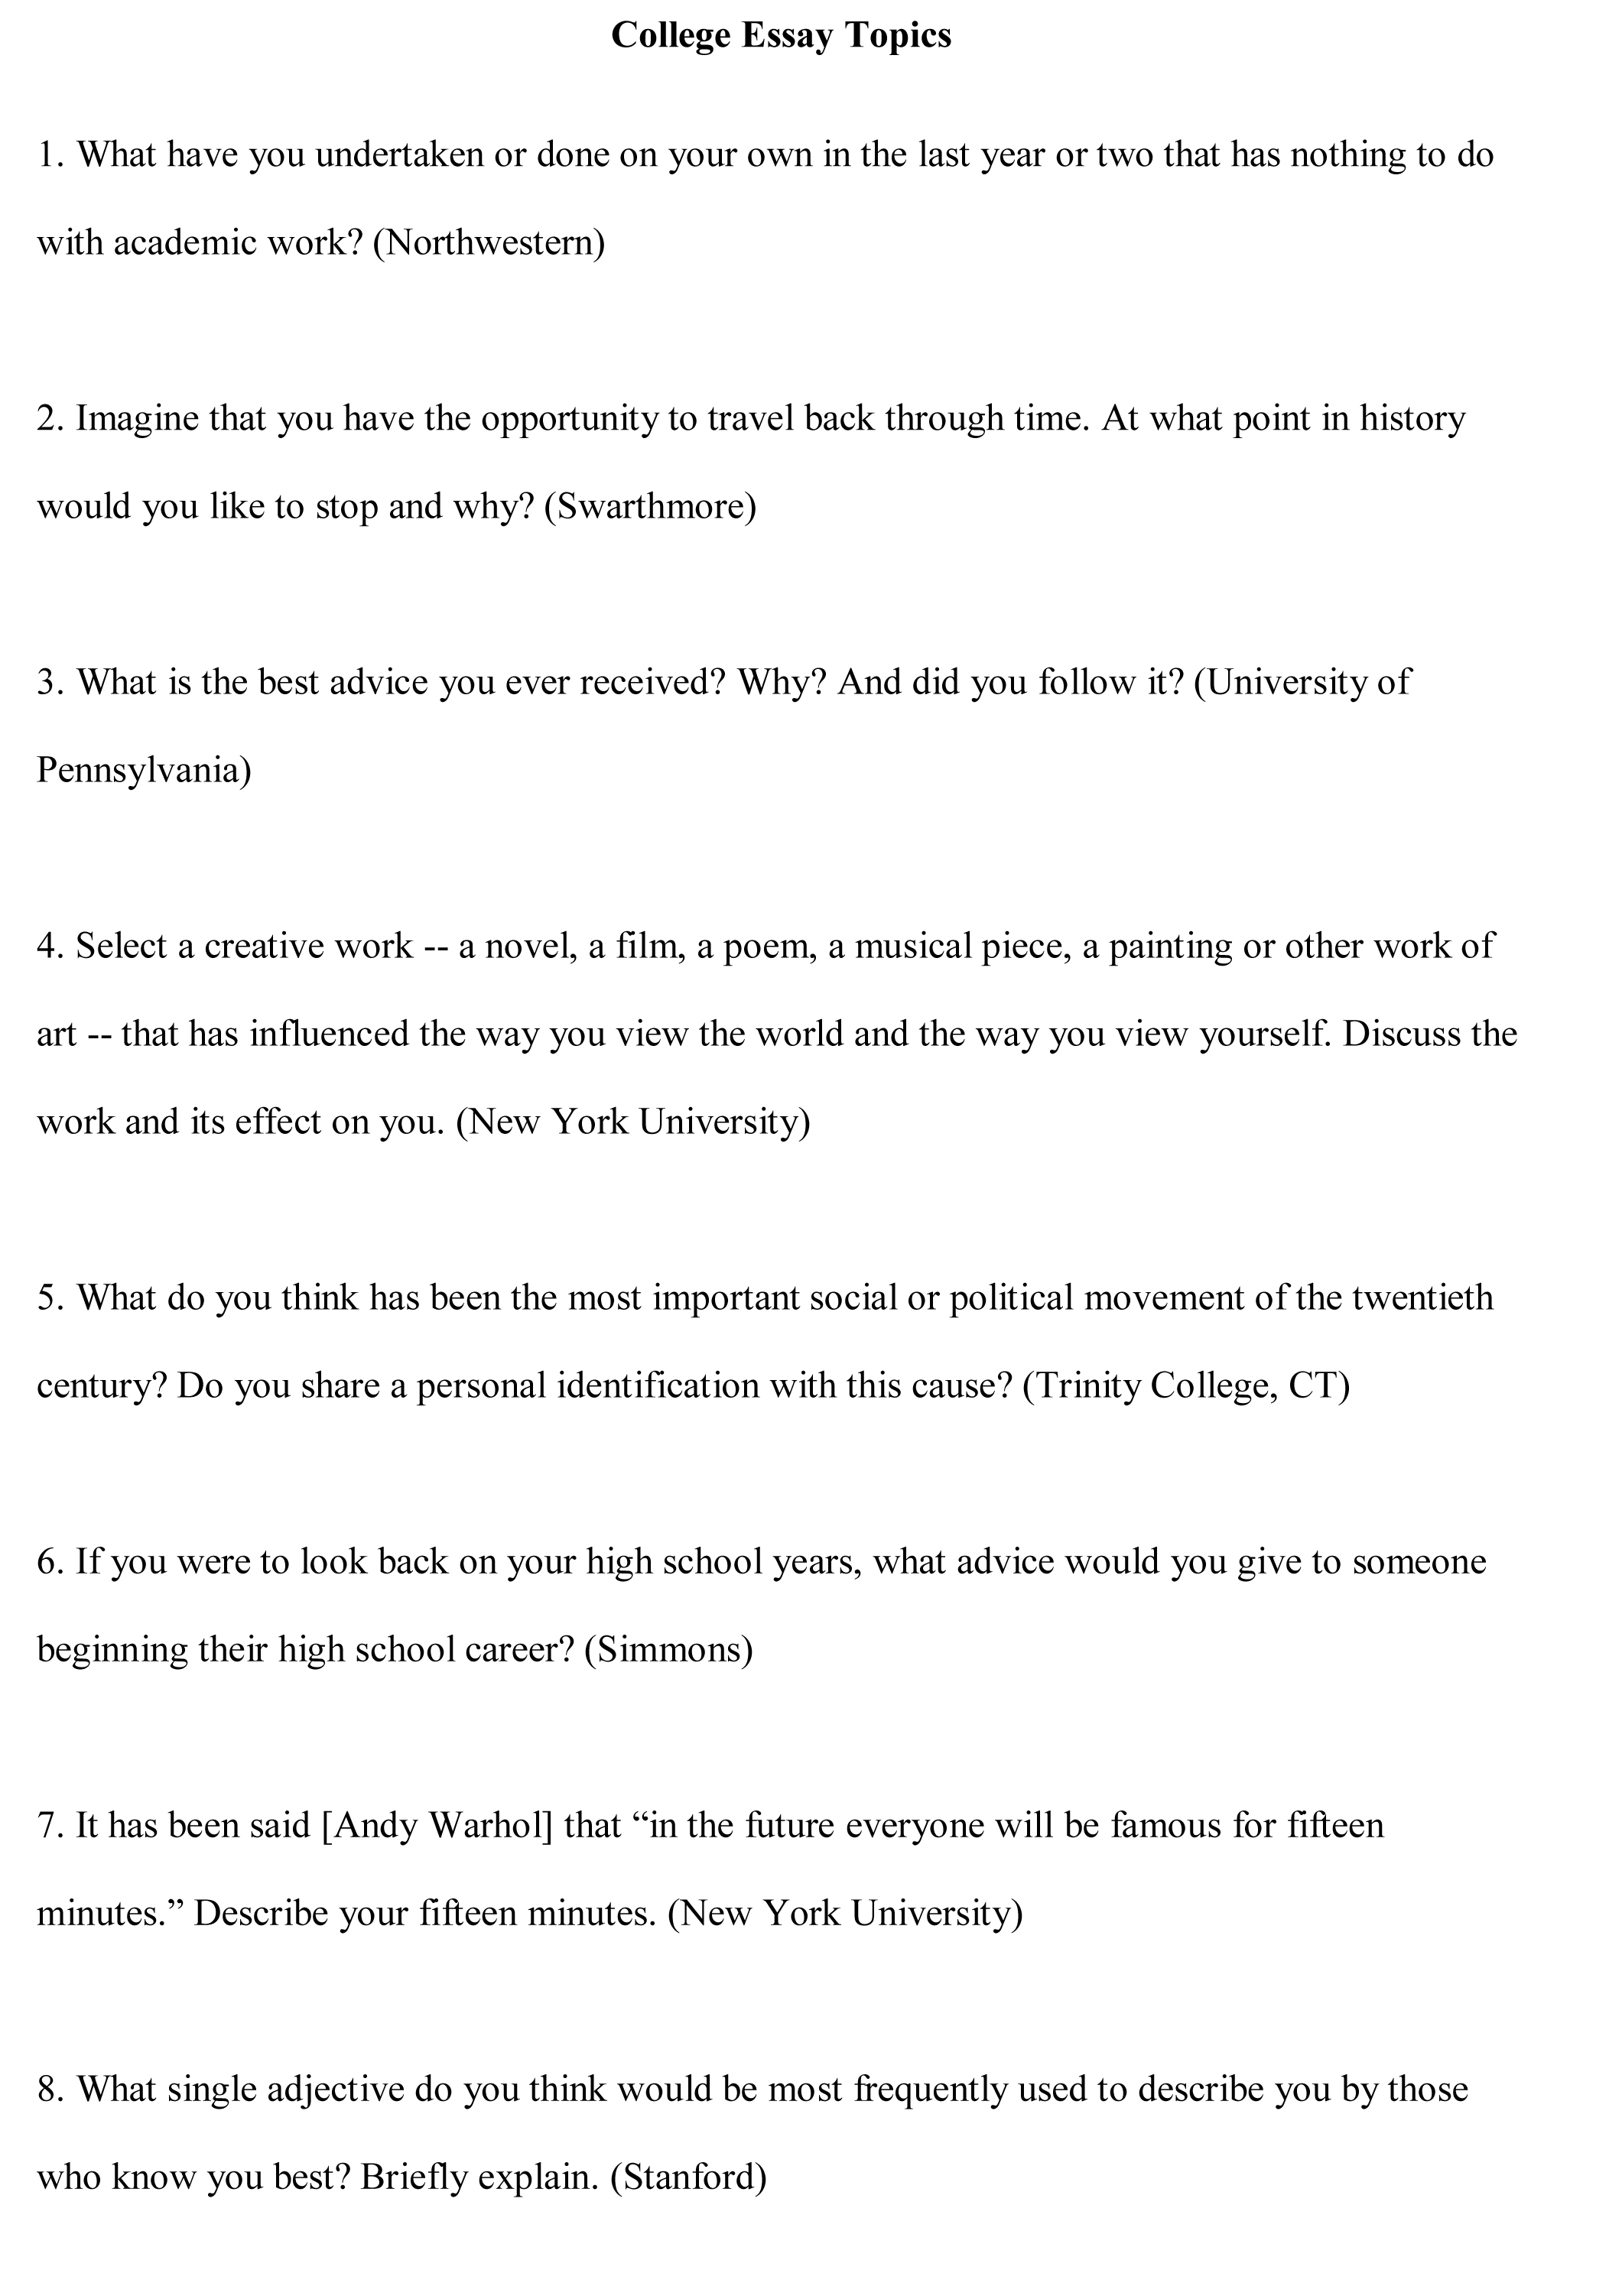 018 College Essay Topics Free Sample1 Controversial Research Paper Outstanding Ideas Full